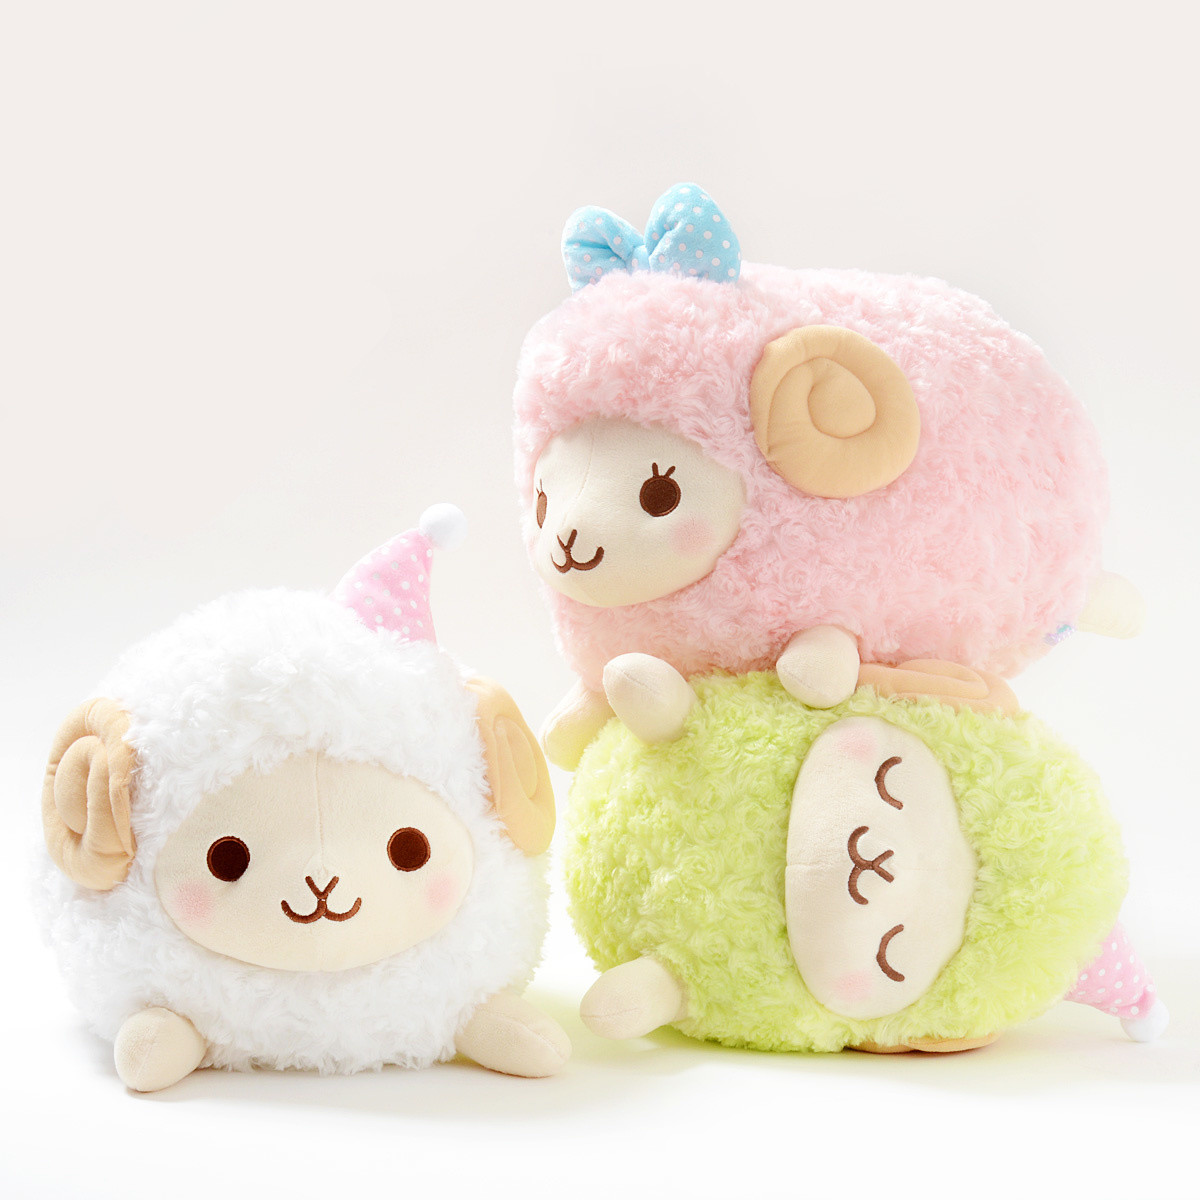 Dreamy Wooly Sheep Plush Collection Big Tokyo Otaku